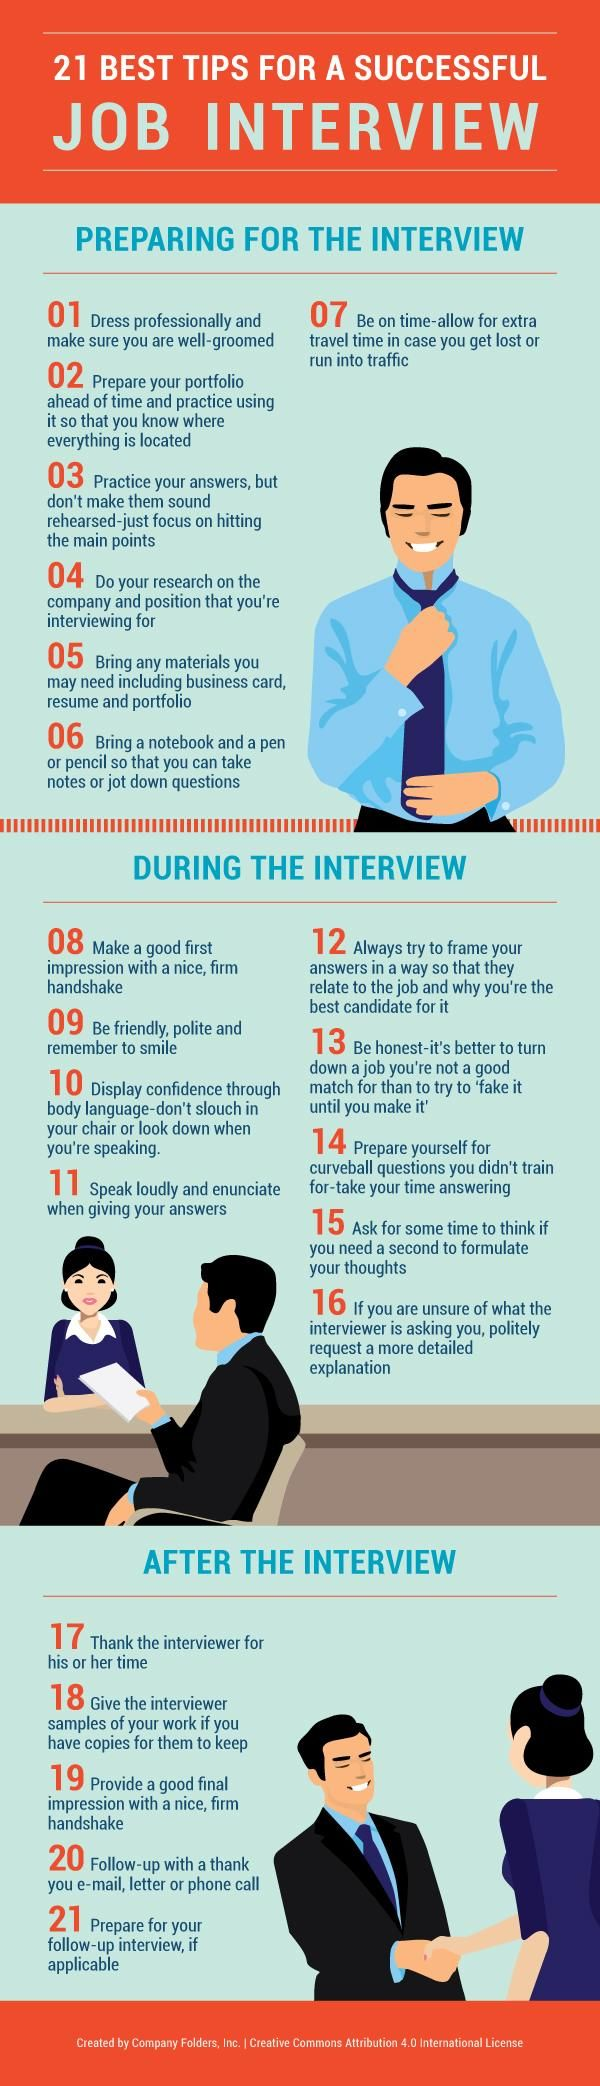 best ideas about best job search sites job 21 tips for a successful job interview includes advice that is applicable to before during and after your employment interview